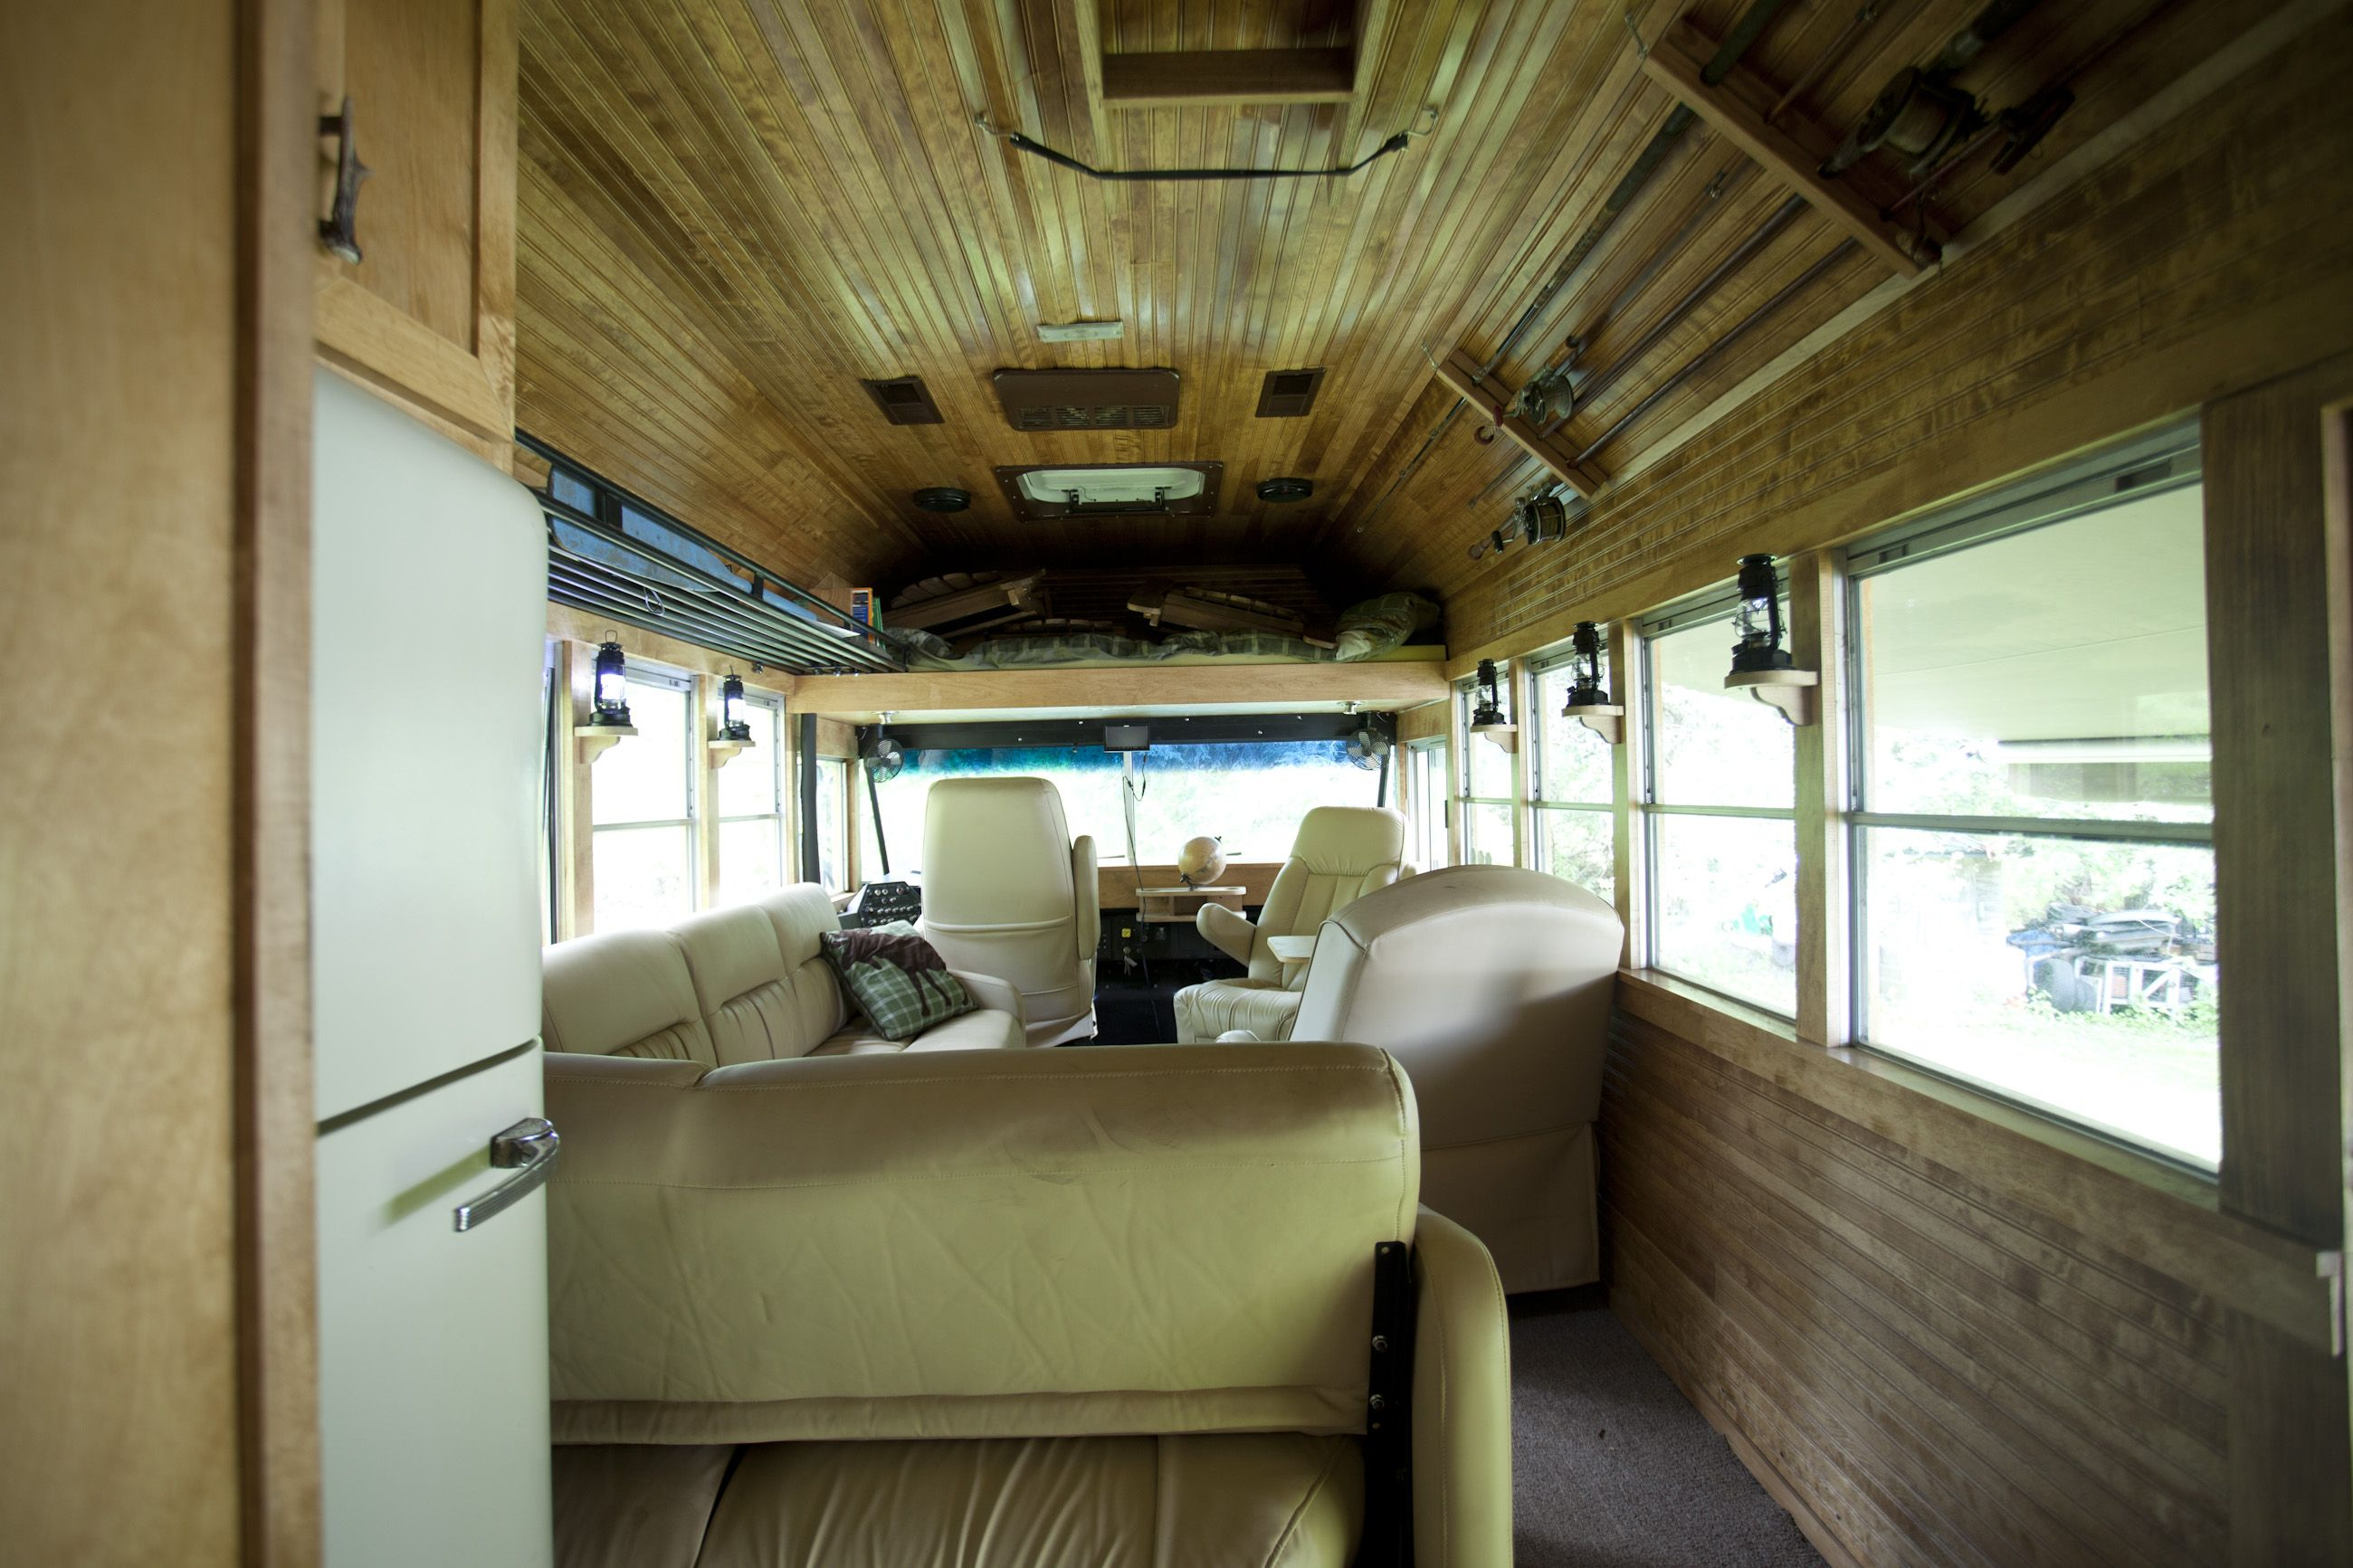 Converted School Bus Interiors